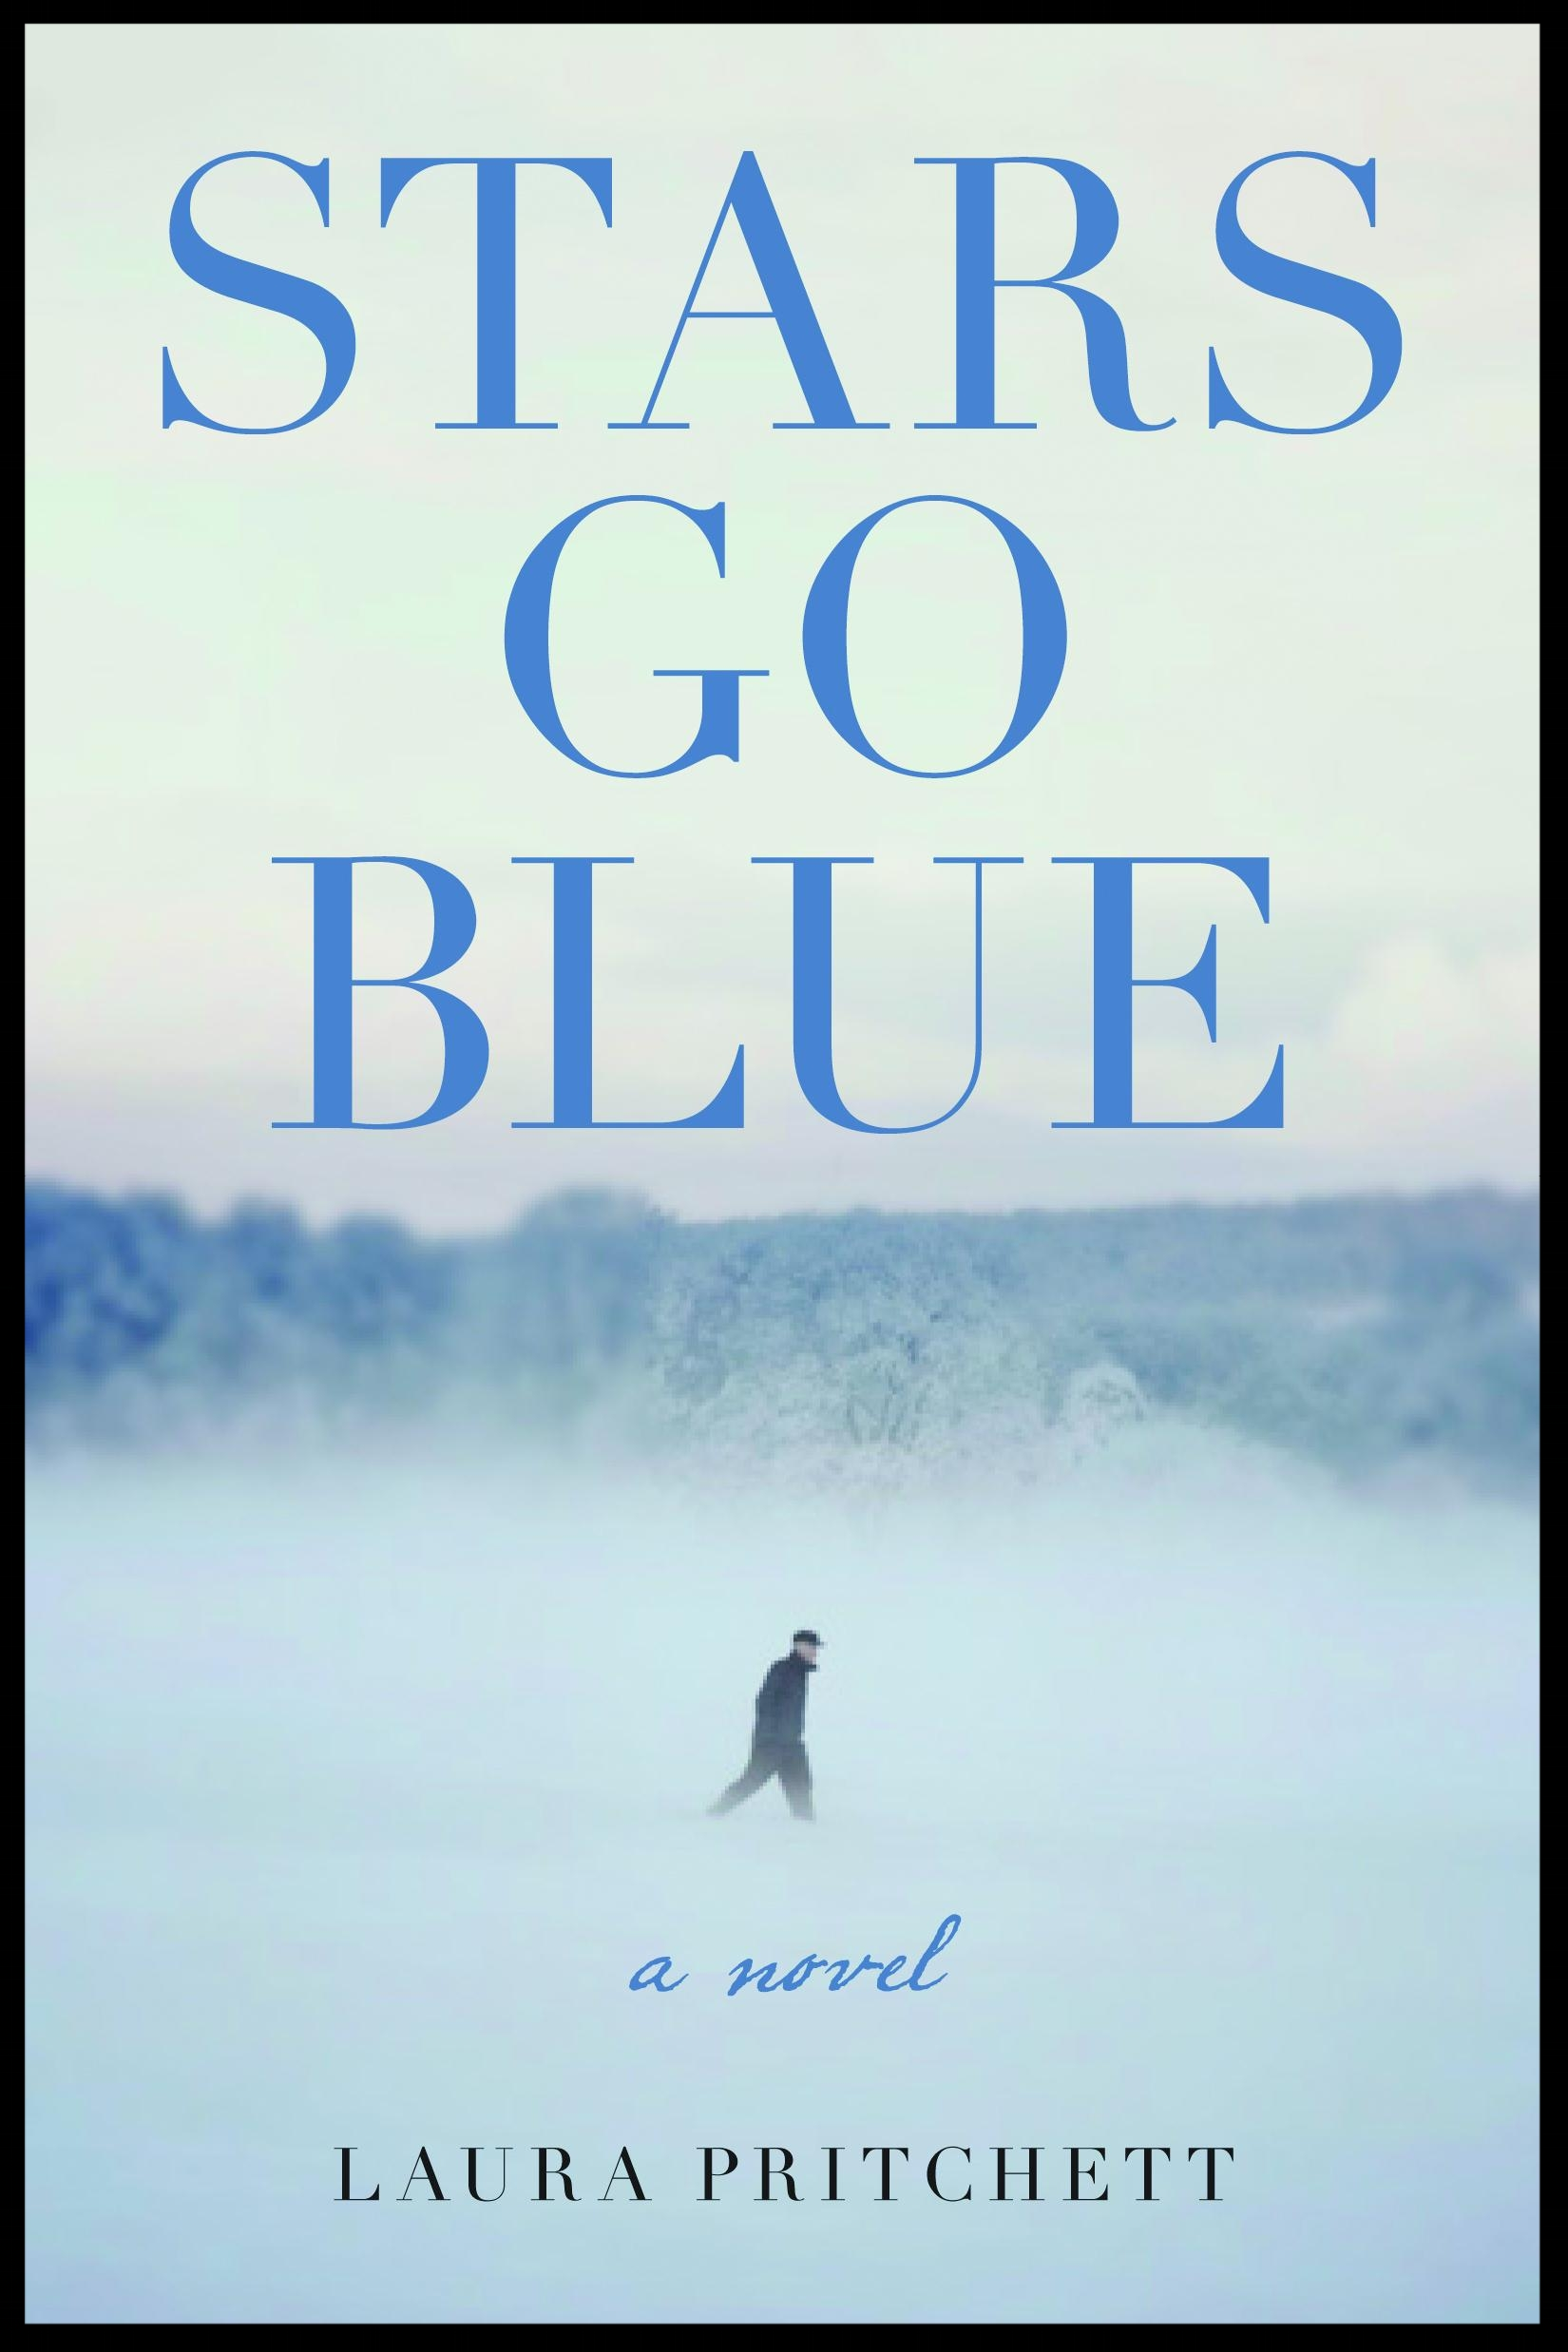 Stars Go Blue was awarded the High Plains Fiction Award